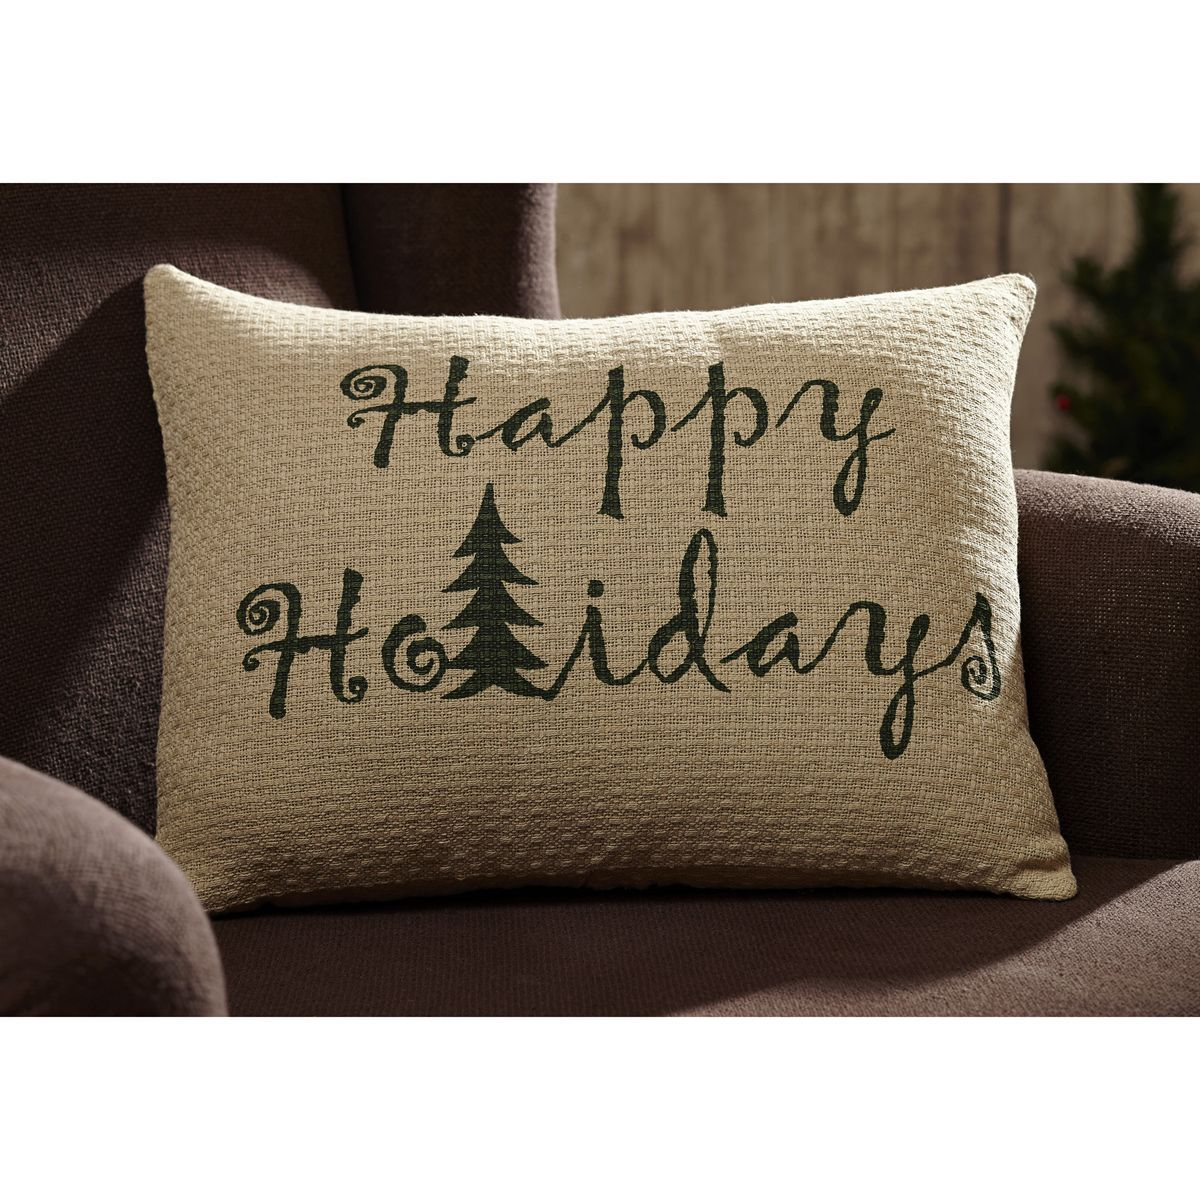 Evergreen pillow happy holidays products pinterest products